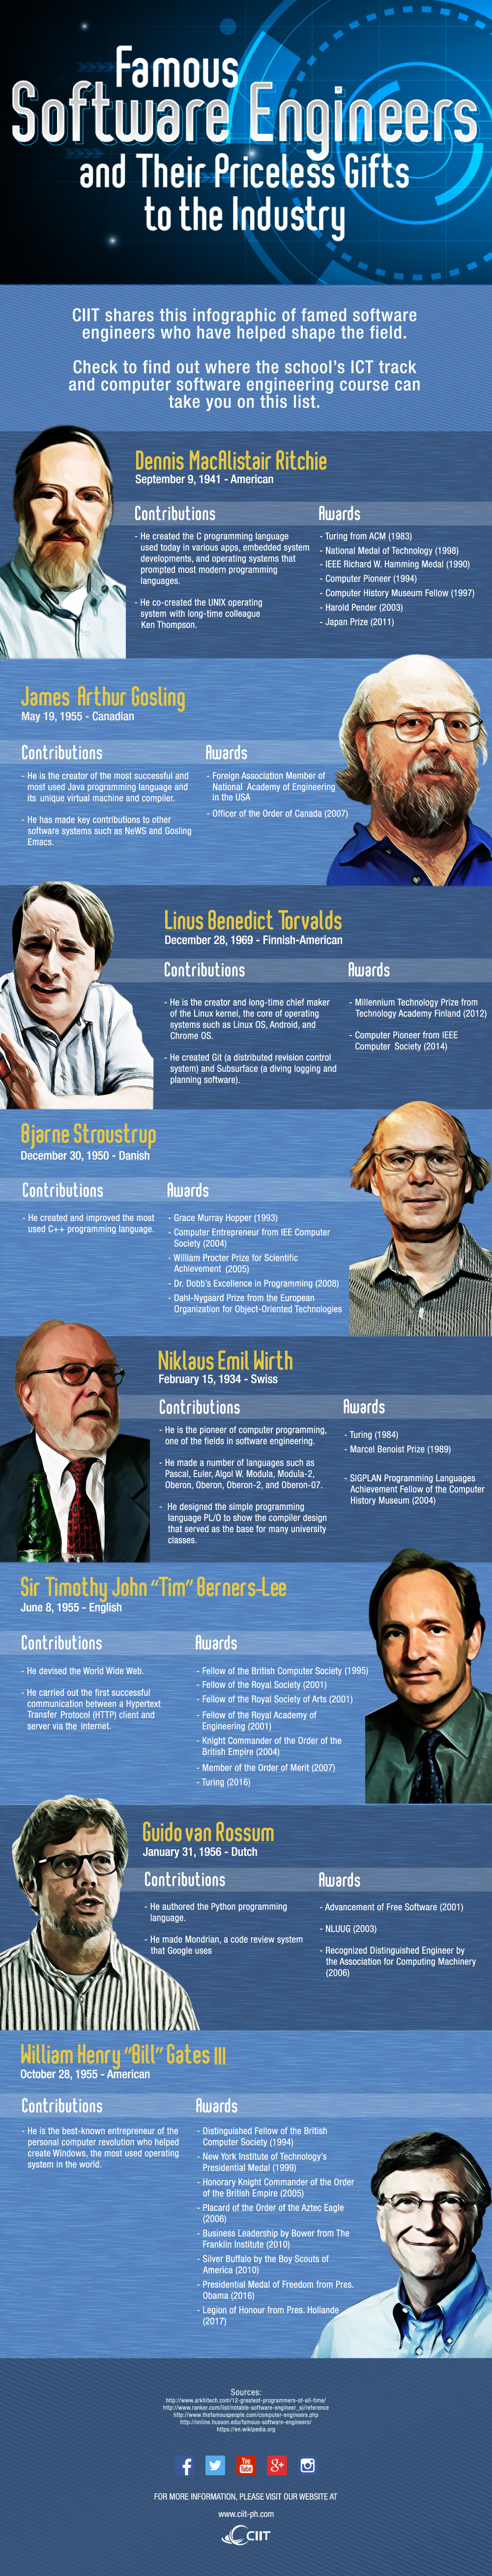 Famous Software Engineers and Their Priceless Gifts to the Industry (Infographic) - Computer Science Course